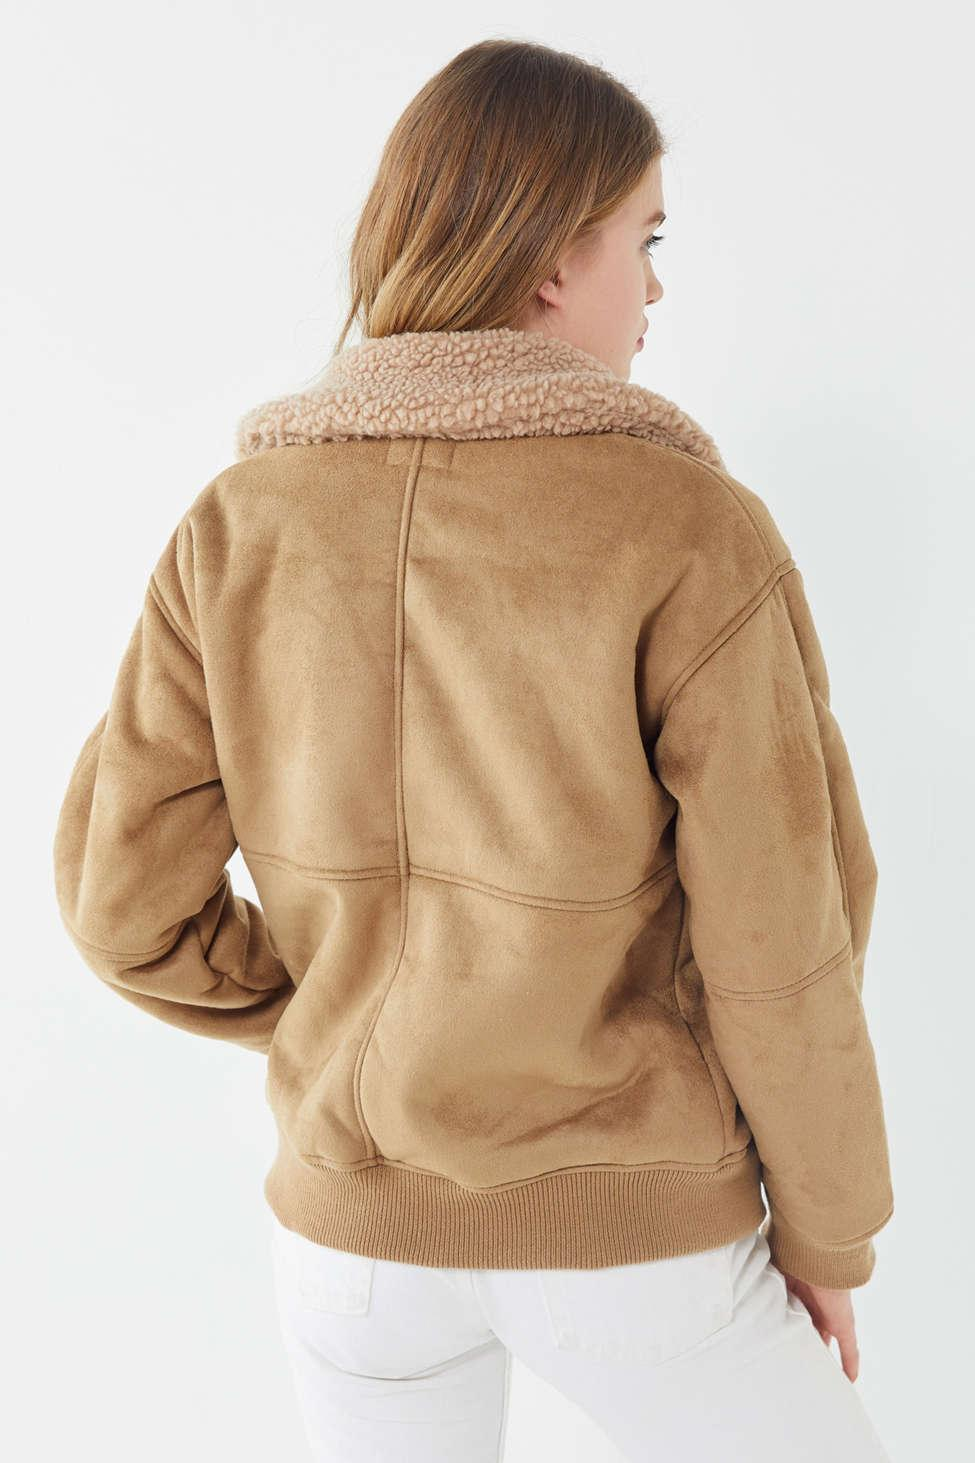 702317958a3 Urban Outfitters Uo Faux Suede Sherpa Bomber Jacket in Natural - Lyst